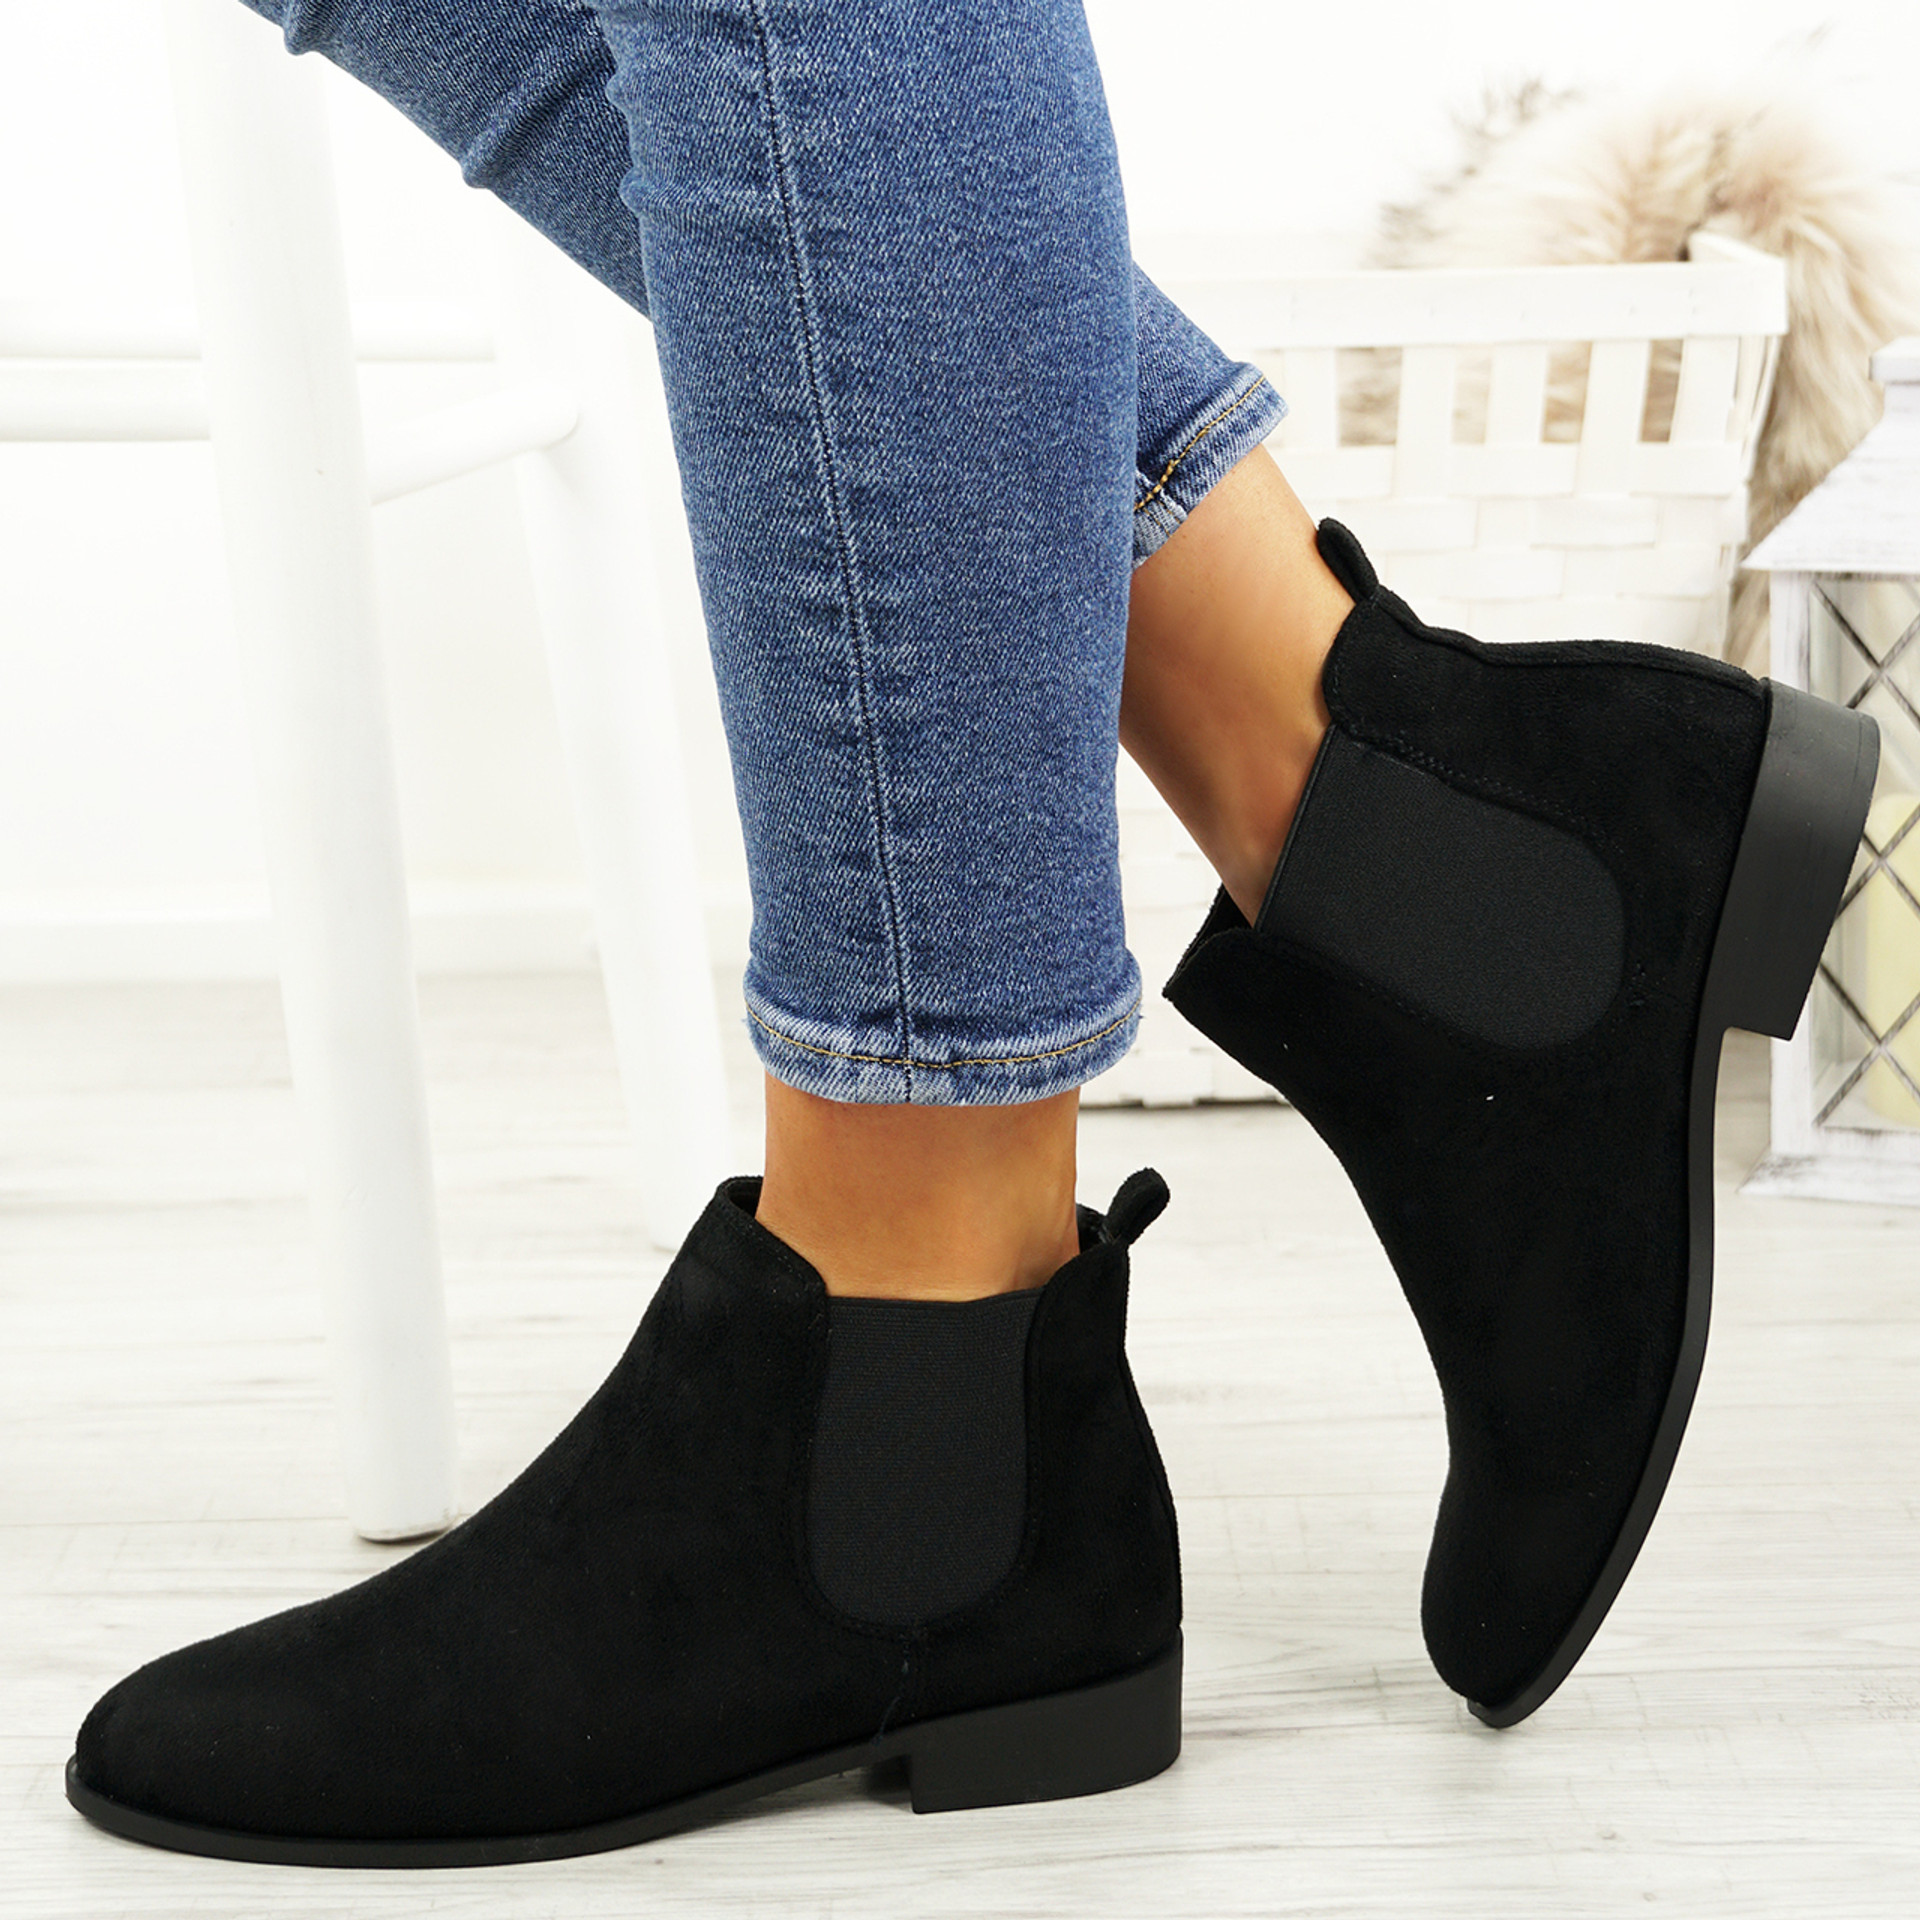 Ronna Black Suede Chelsea Ankle Boots